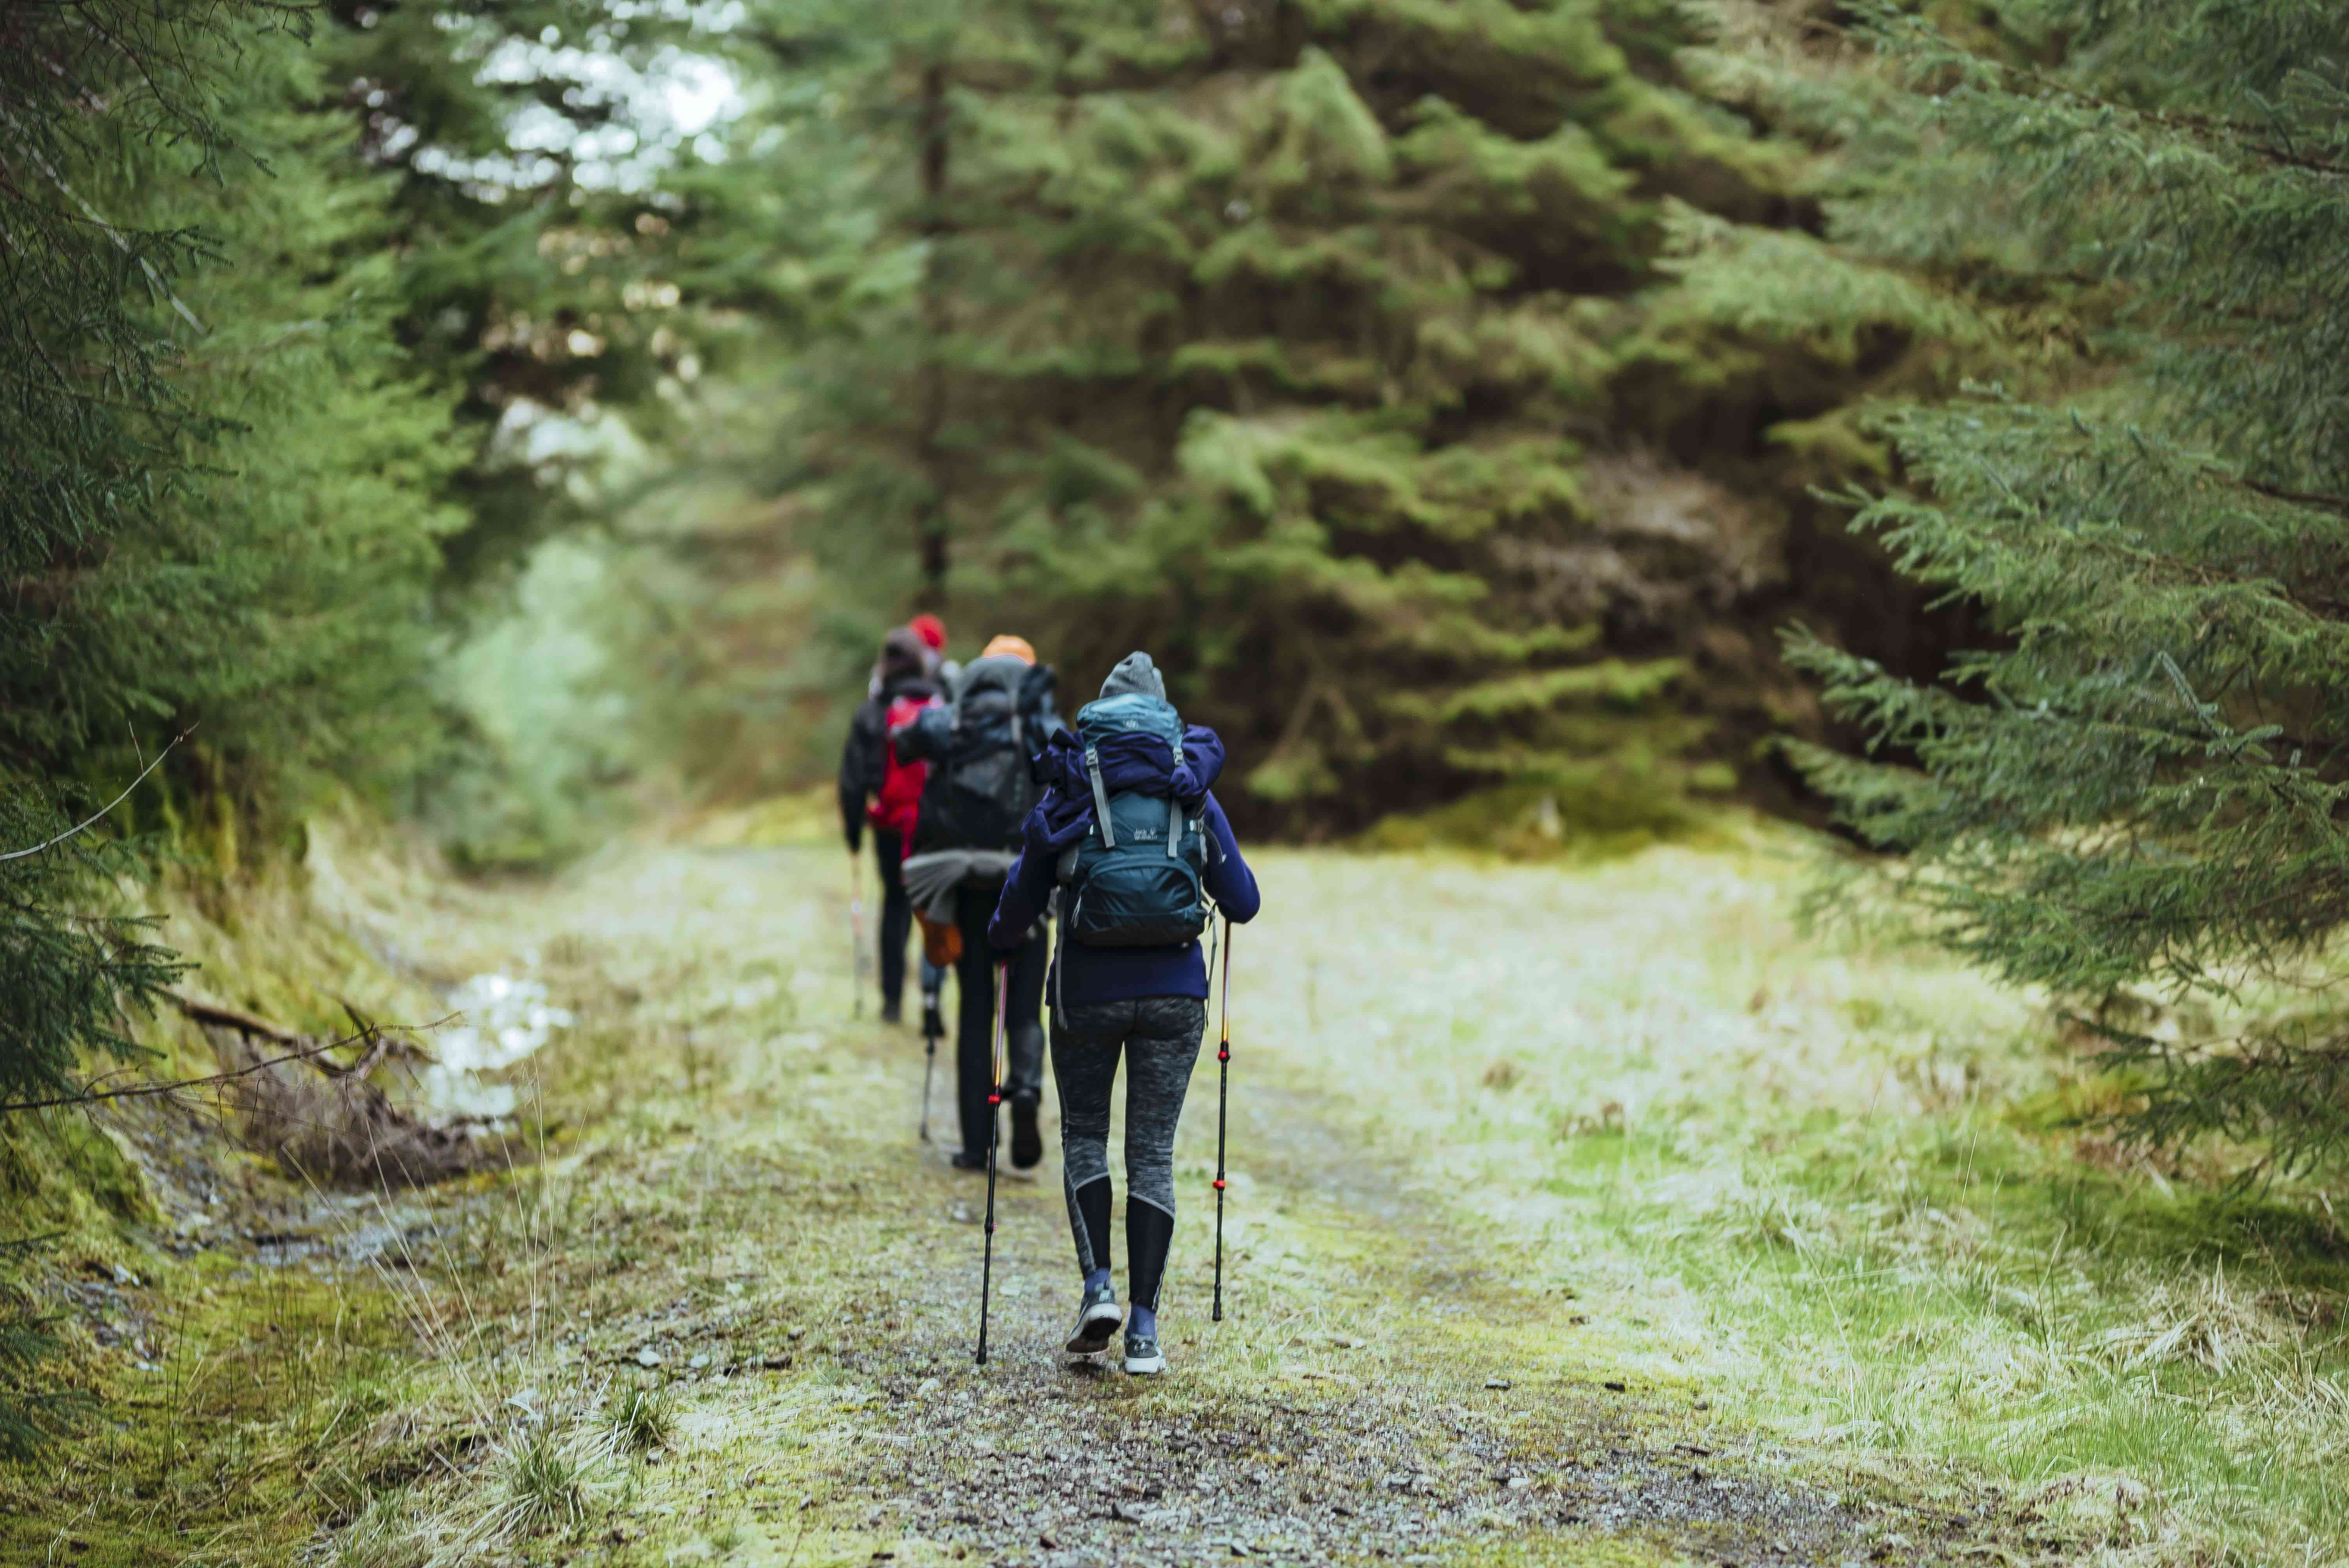 A group of people hiking through the forest